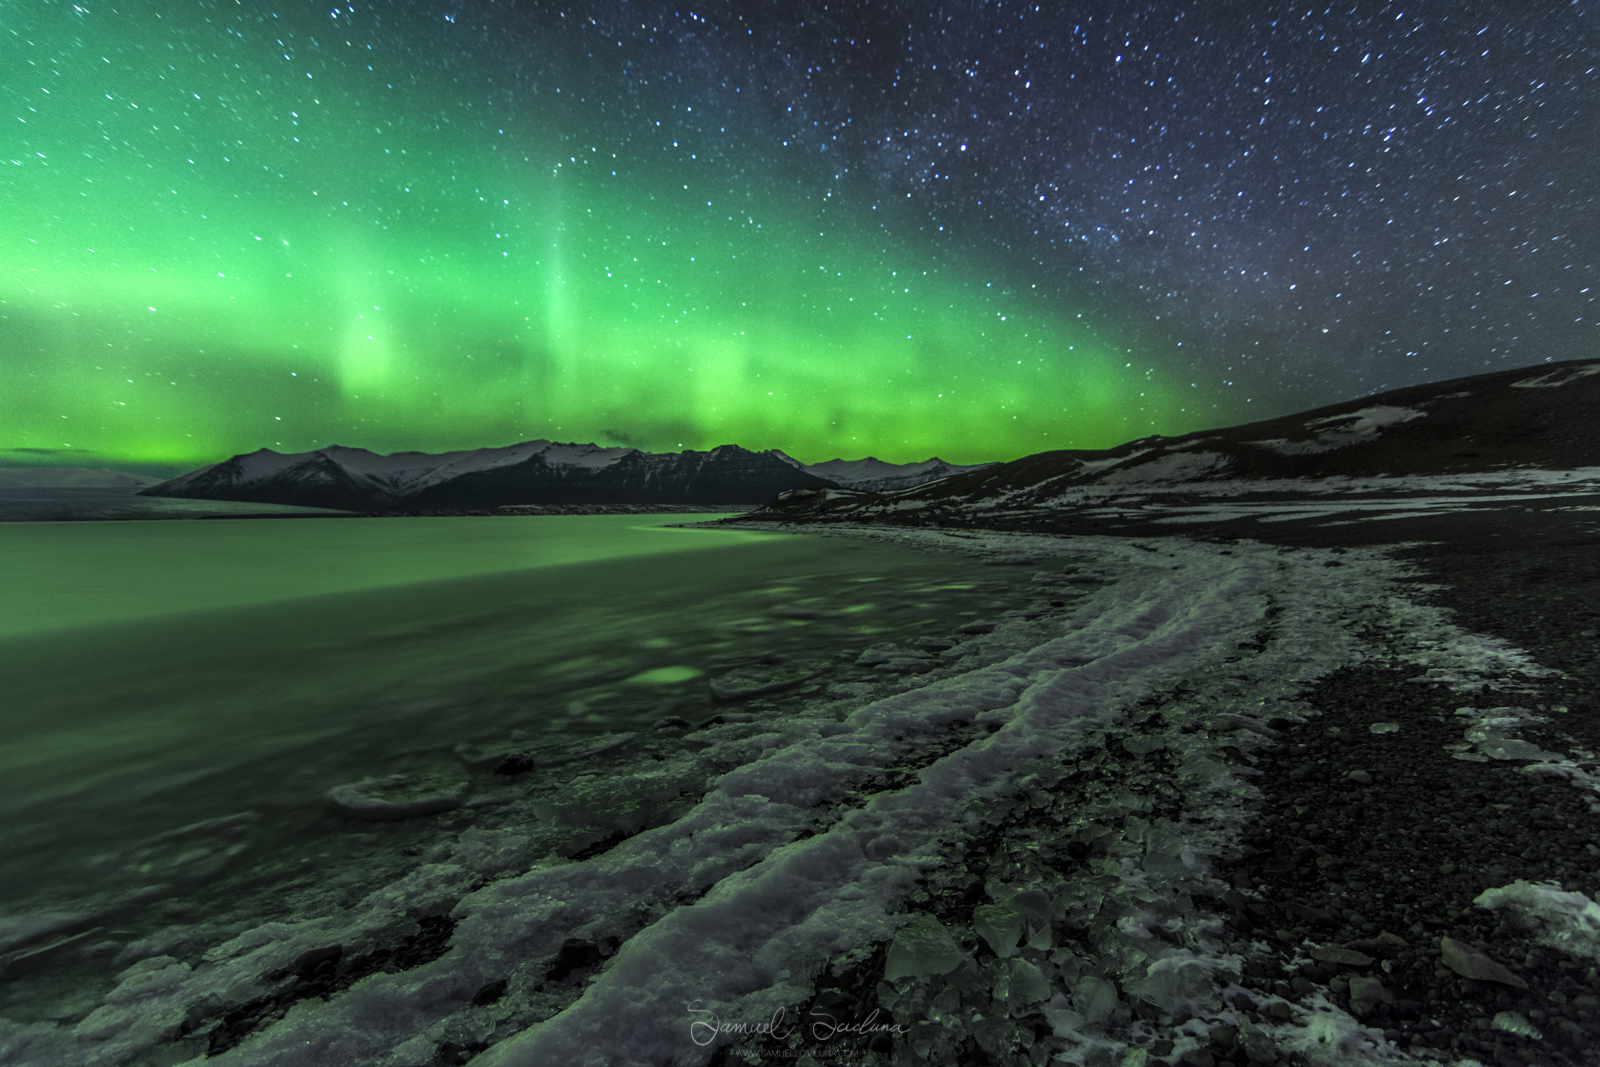 The Northern Lights mirror the shape of the banks of Jökulsárlón glacier lagoon.